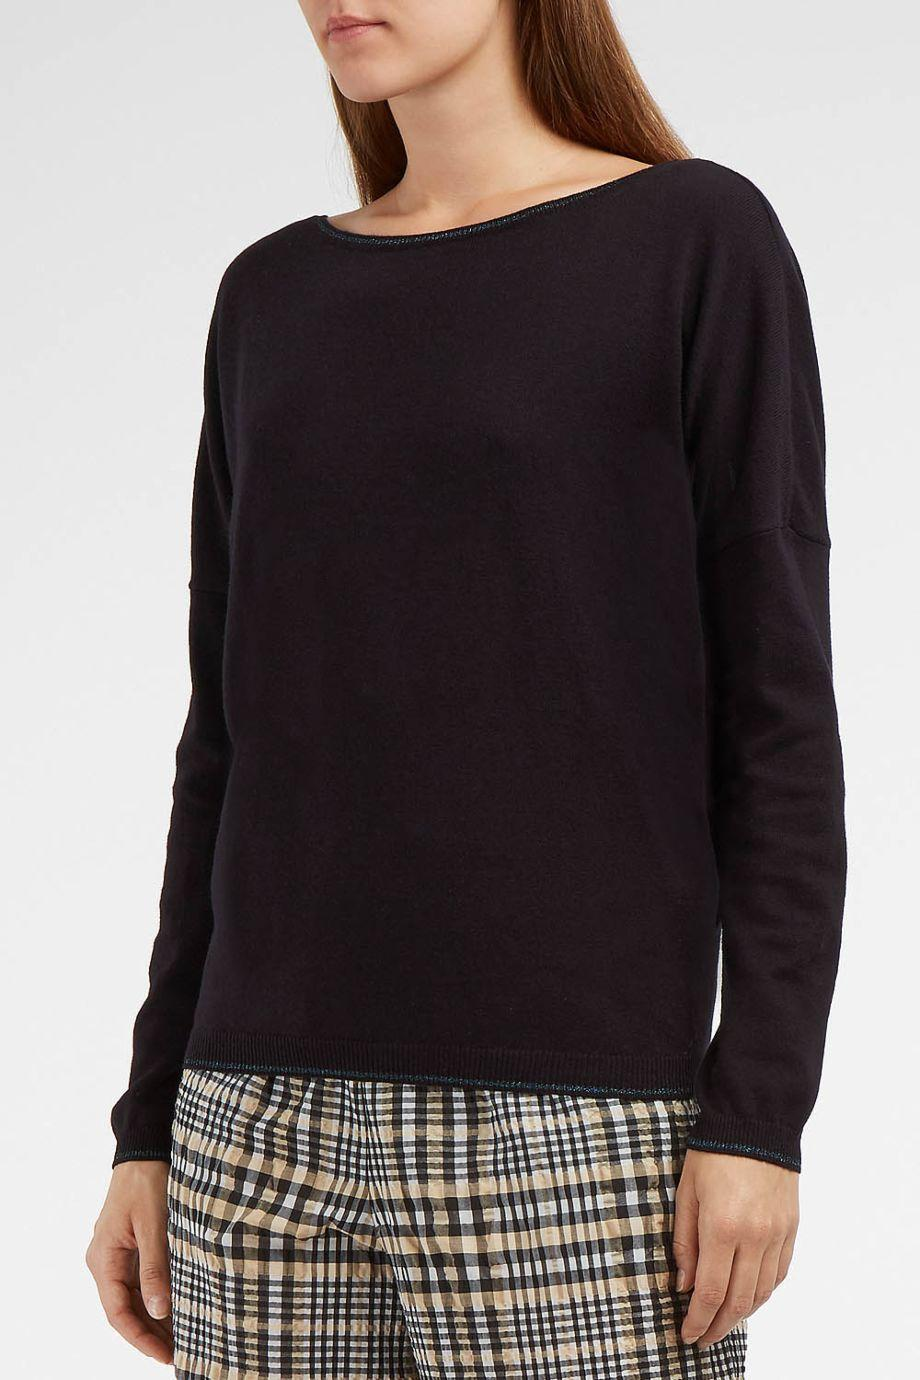 Paul & Joe Pullover With Cotton, Wool And Metallic Thread In Blue